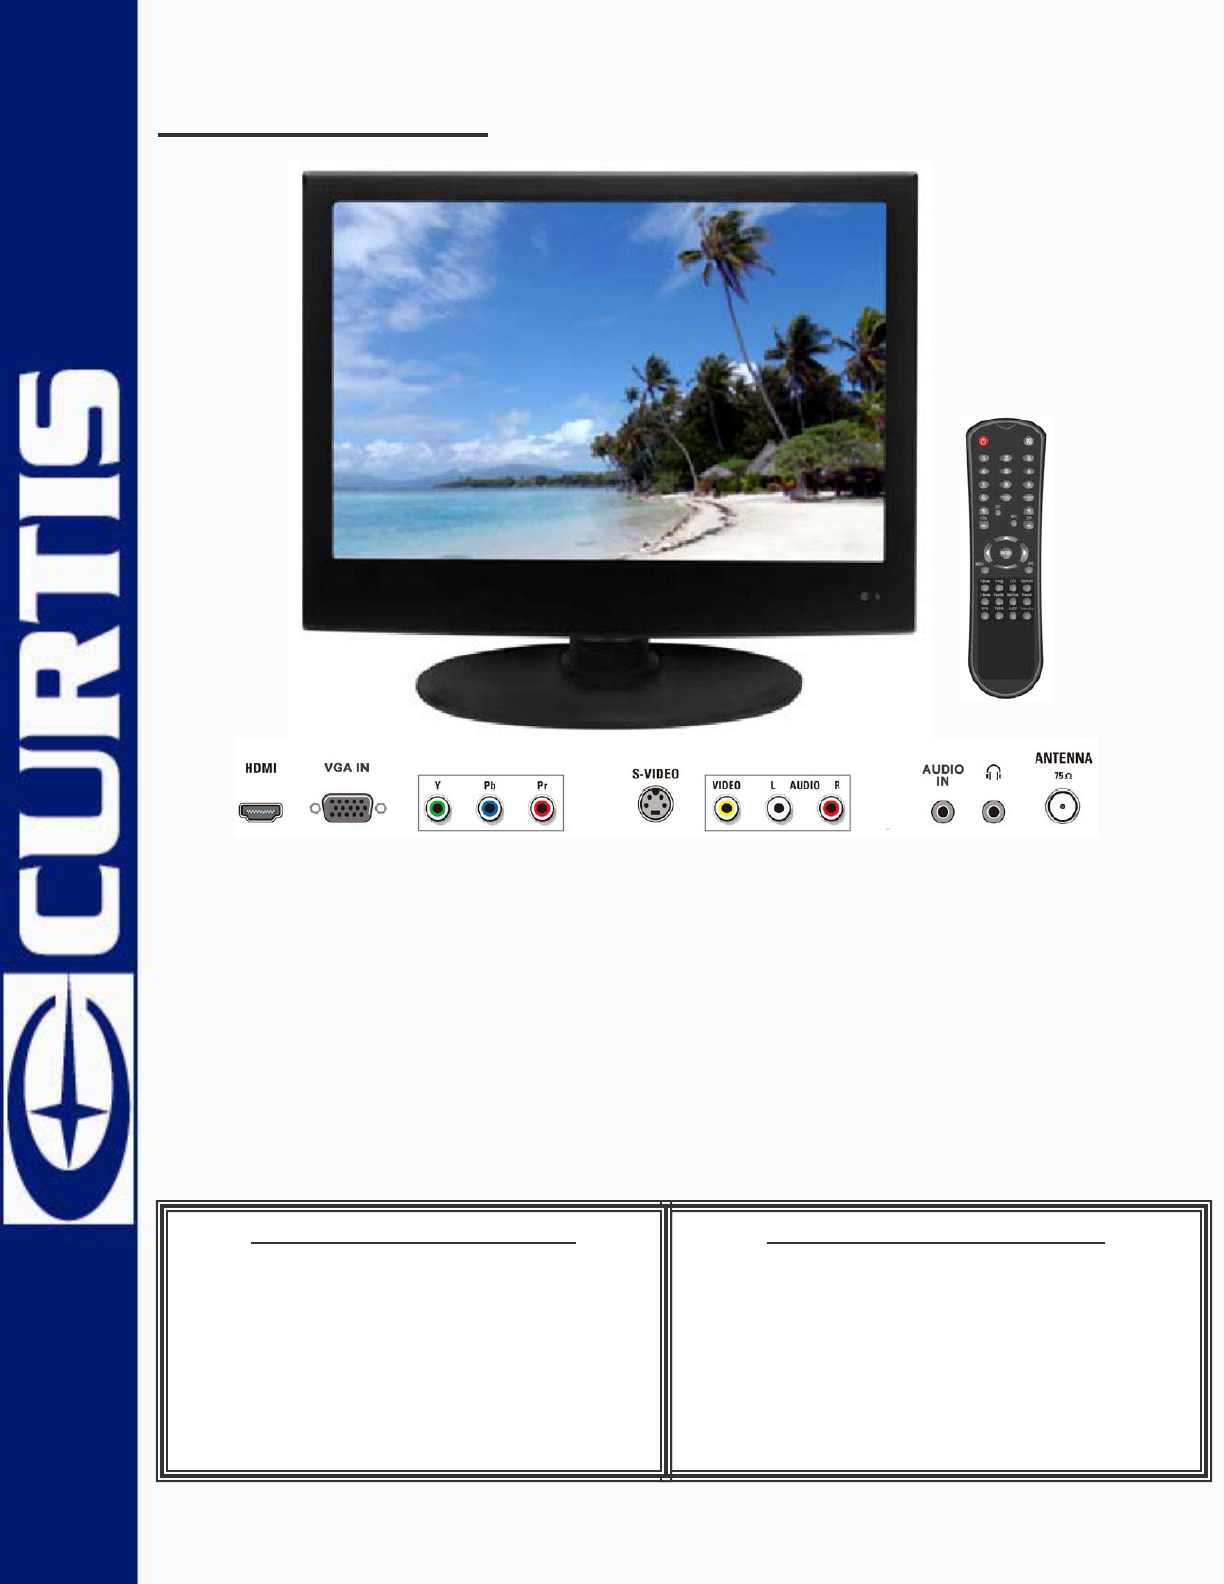 curtis flat panel television lcd1533 user guide manualsonline com rh tv manualsonline com Curtis Mathes Curtis TV Codes